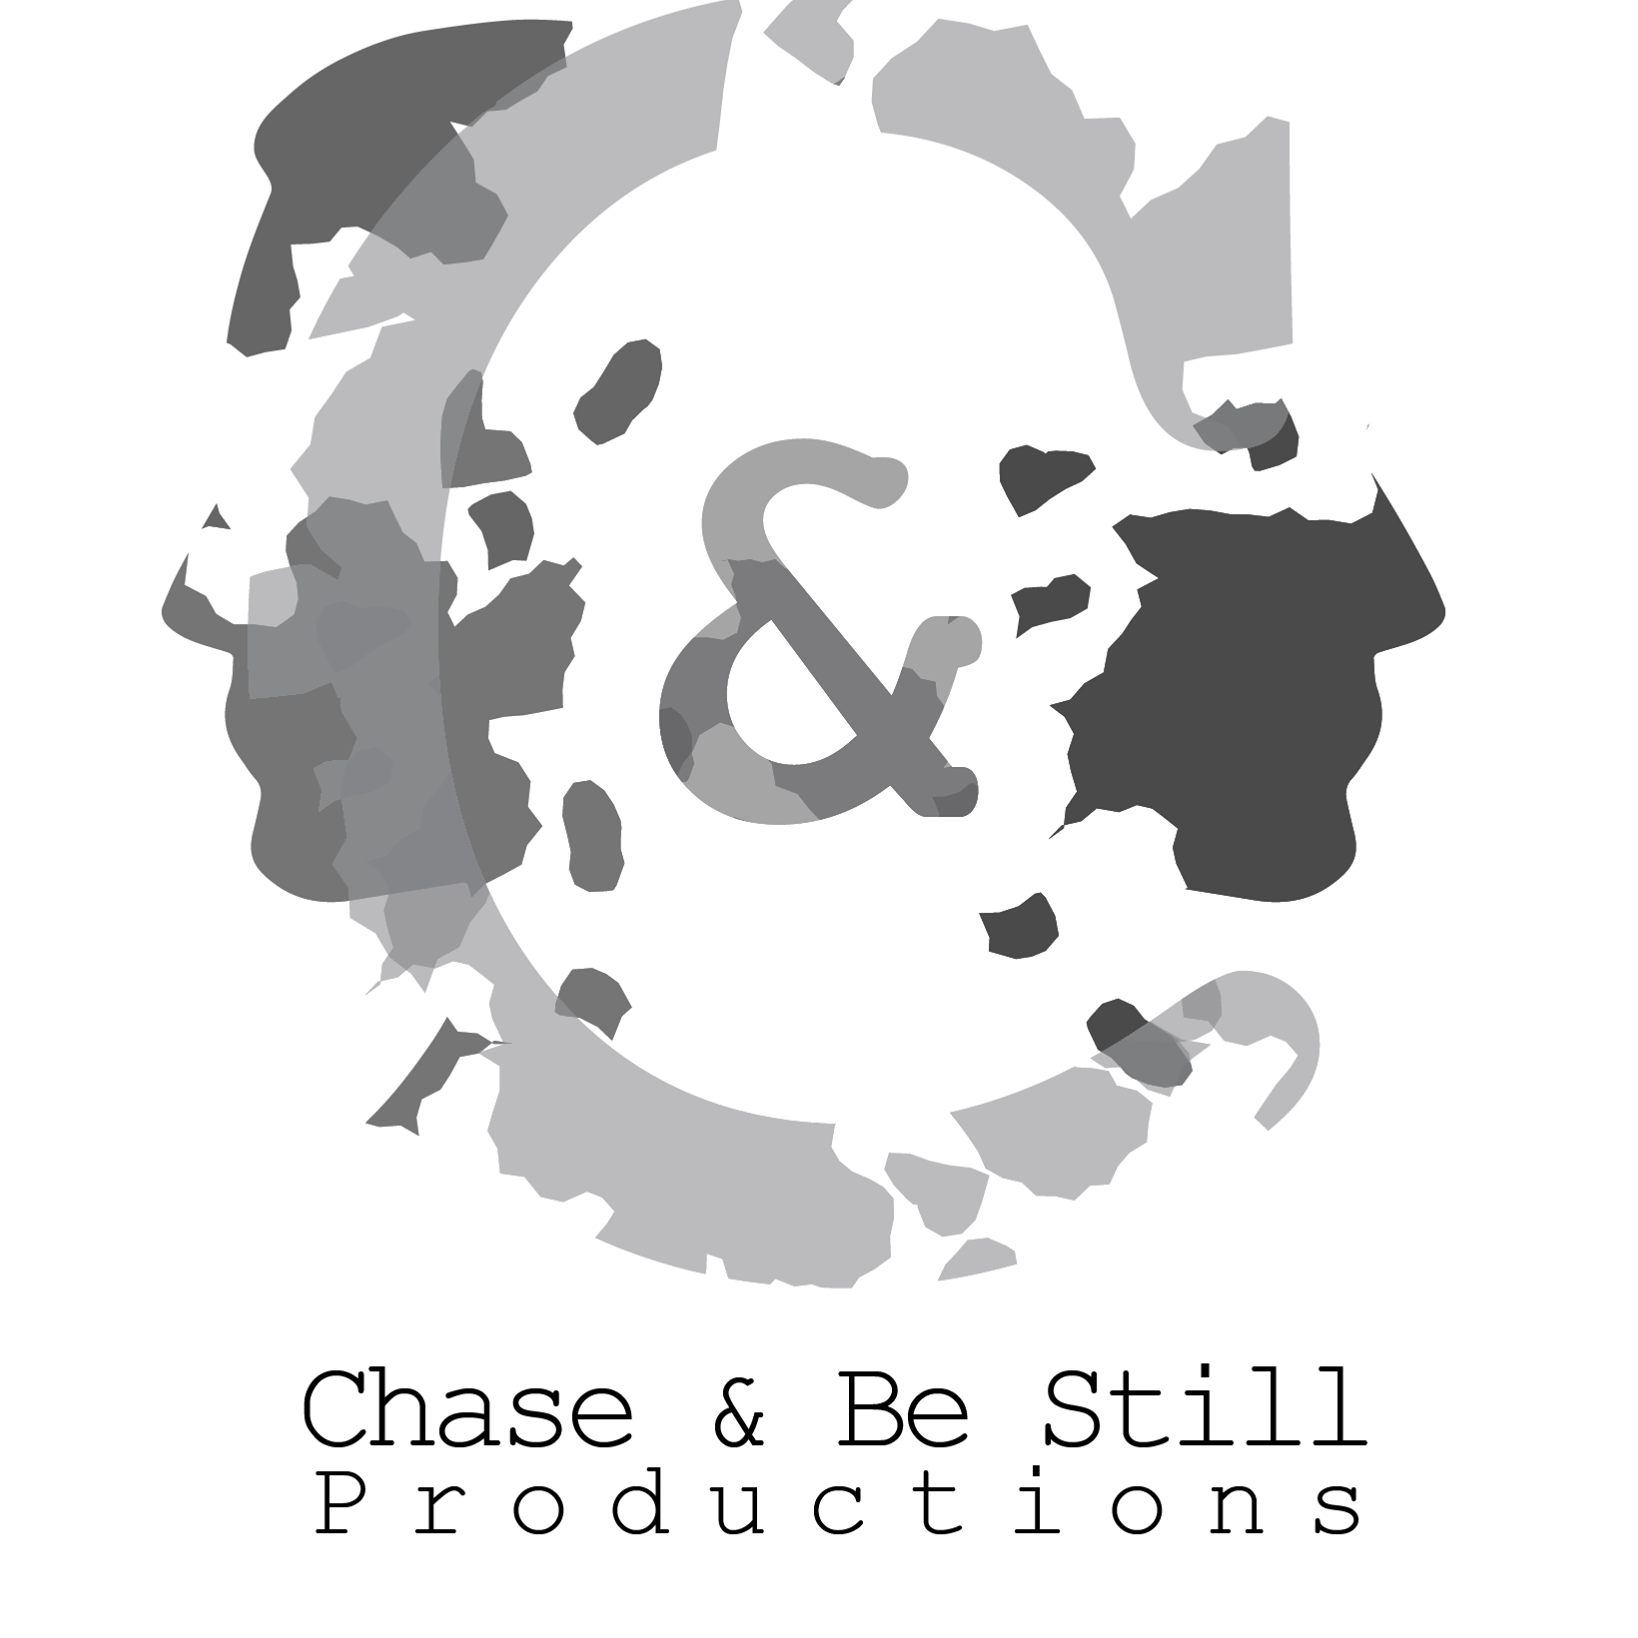 chase & be still PRODUCTIONS - Chase & Be Still is a Theatre and Film company dedicated to showcasing humanity from its most beautiful to its ugliest.